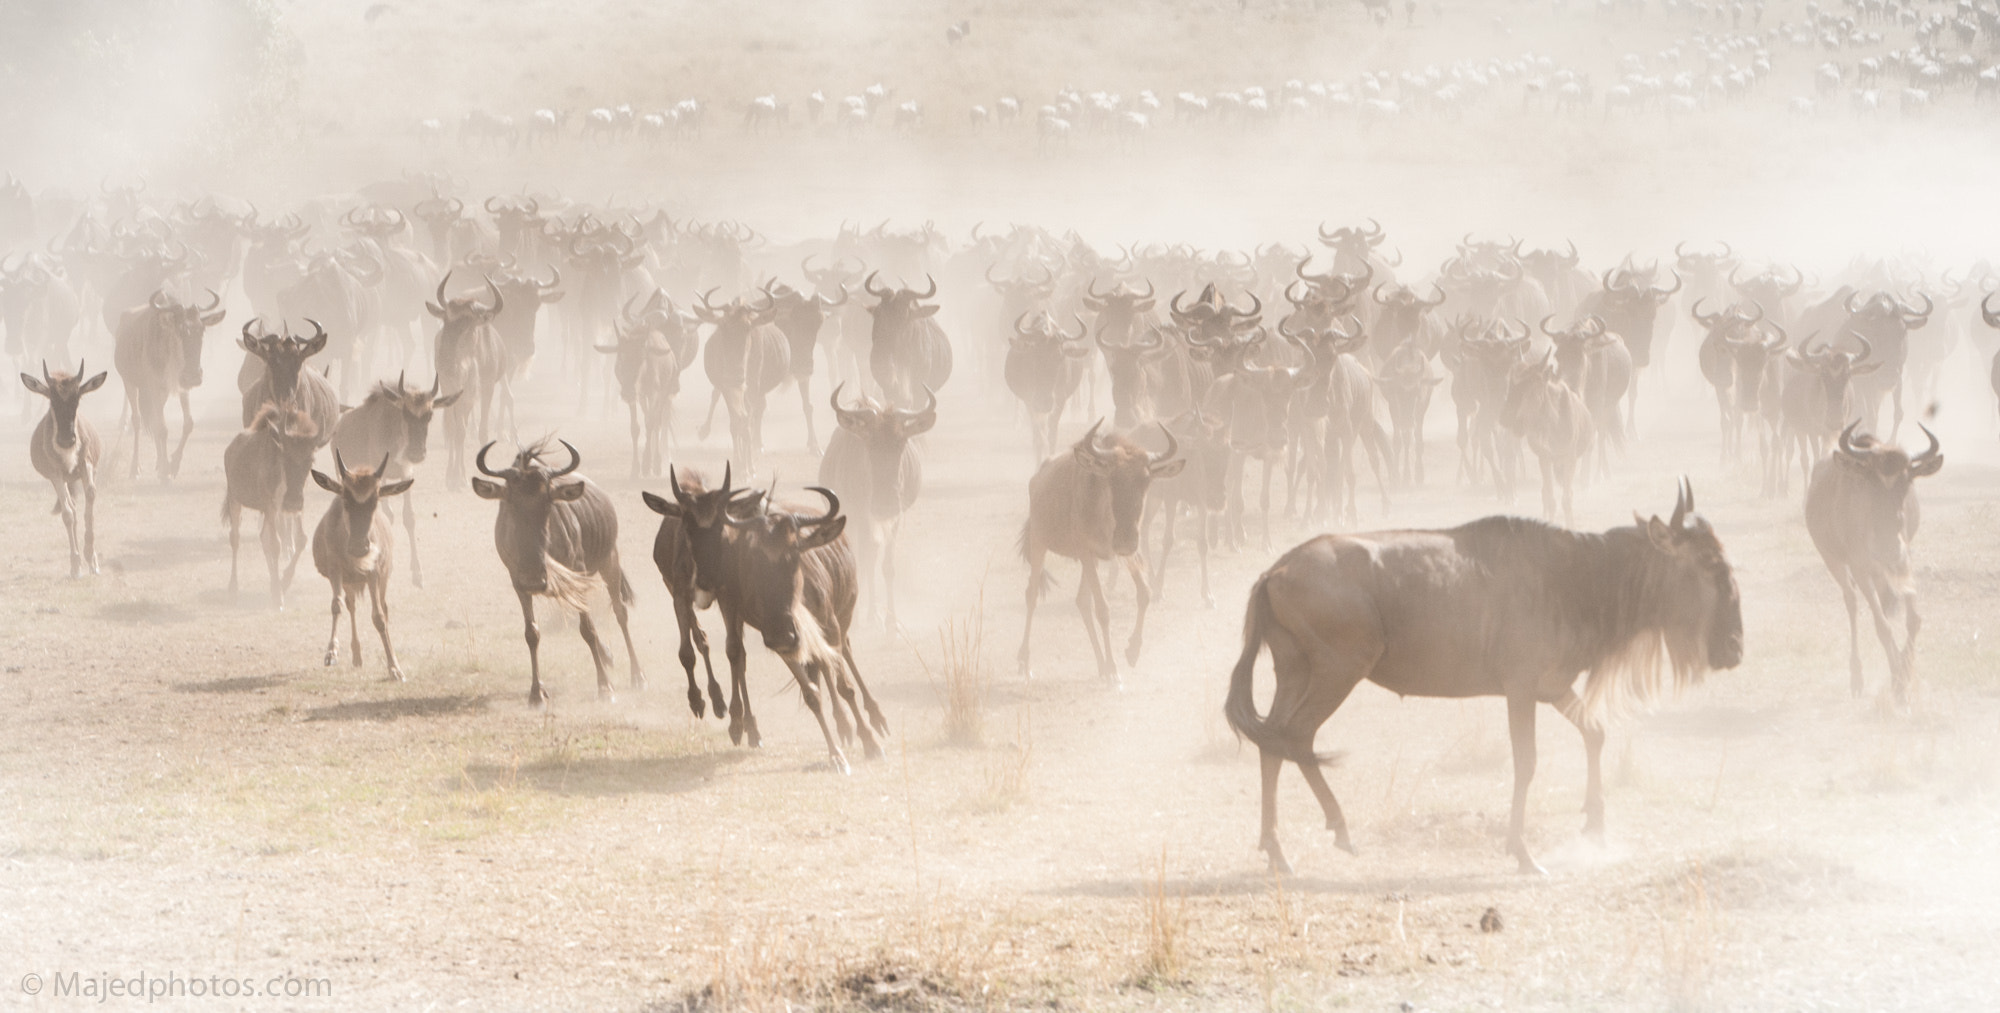 Photograph Crossing by majed Sultan on 500px